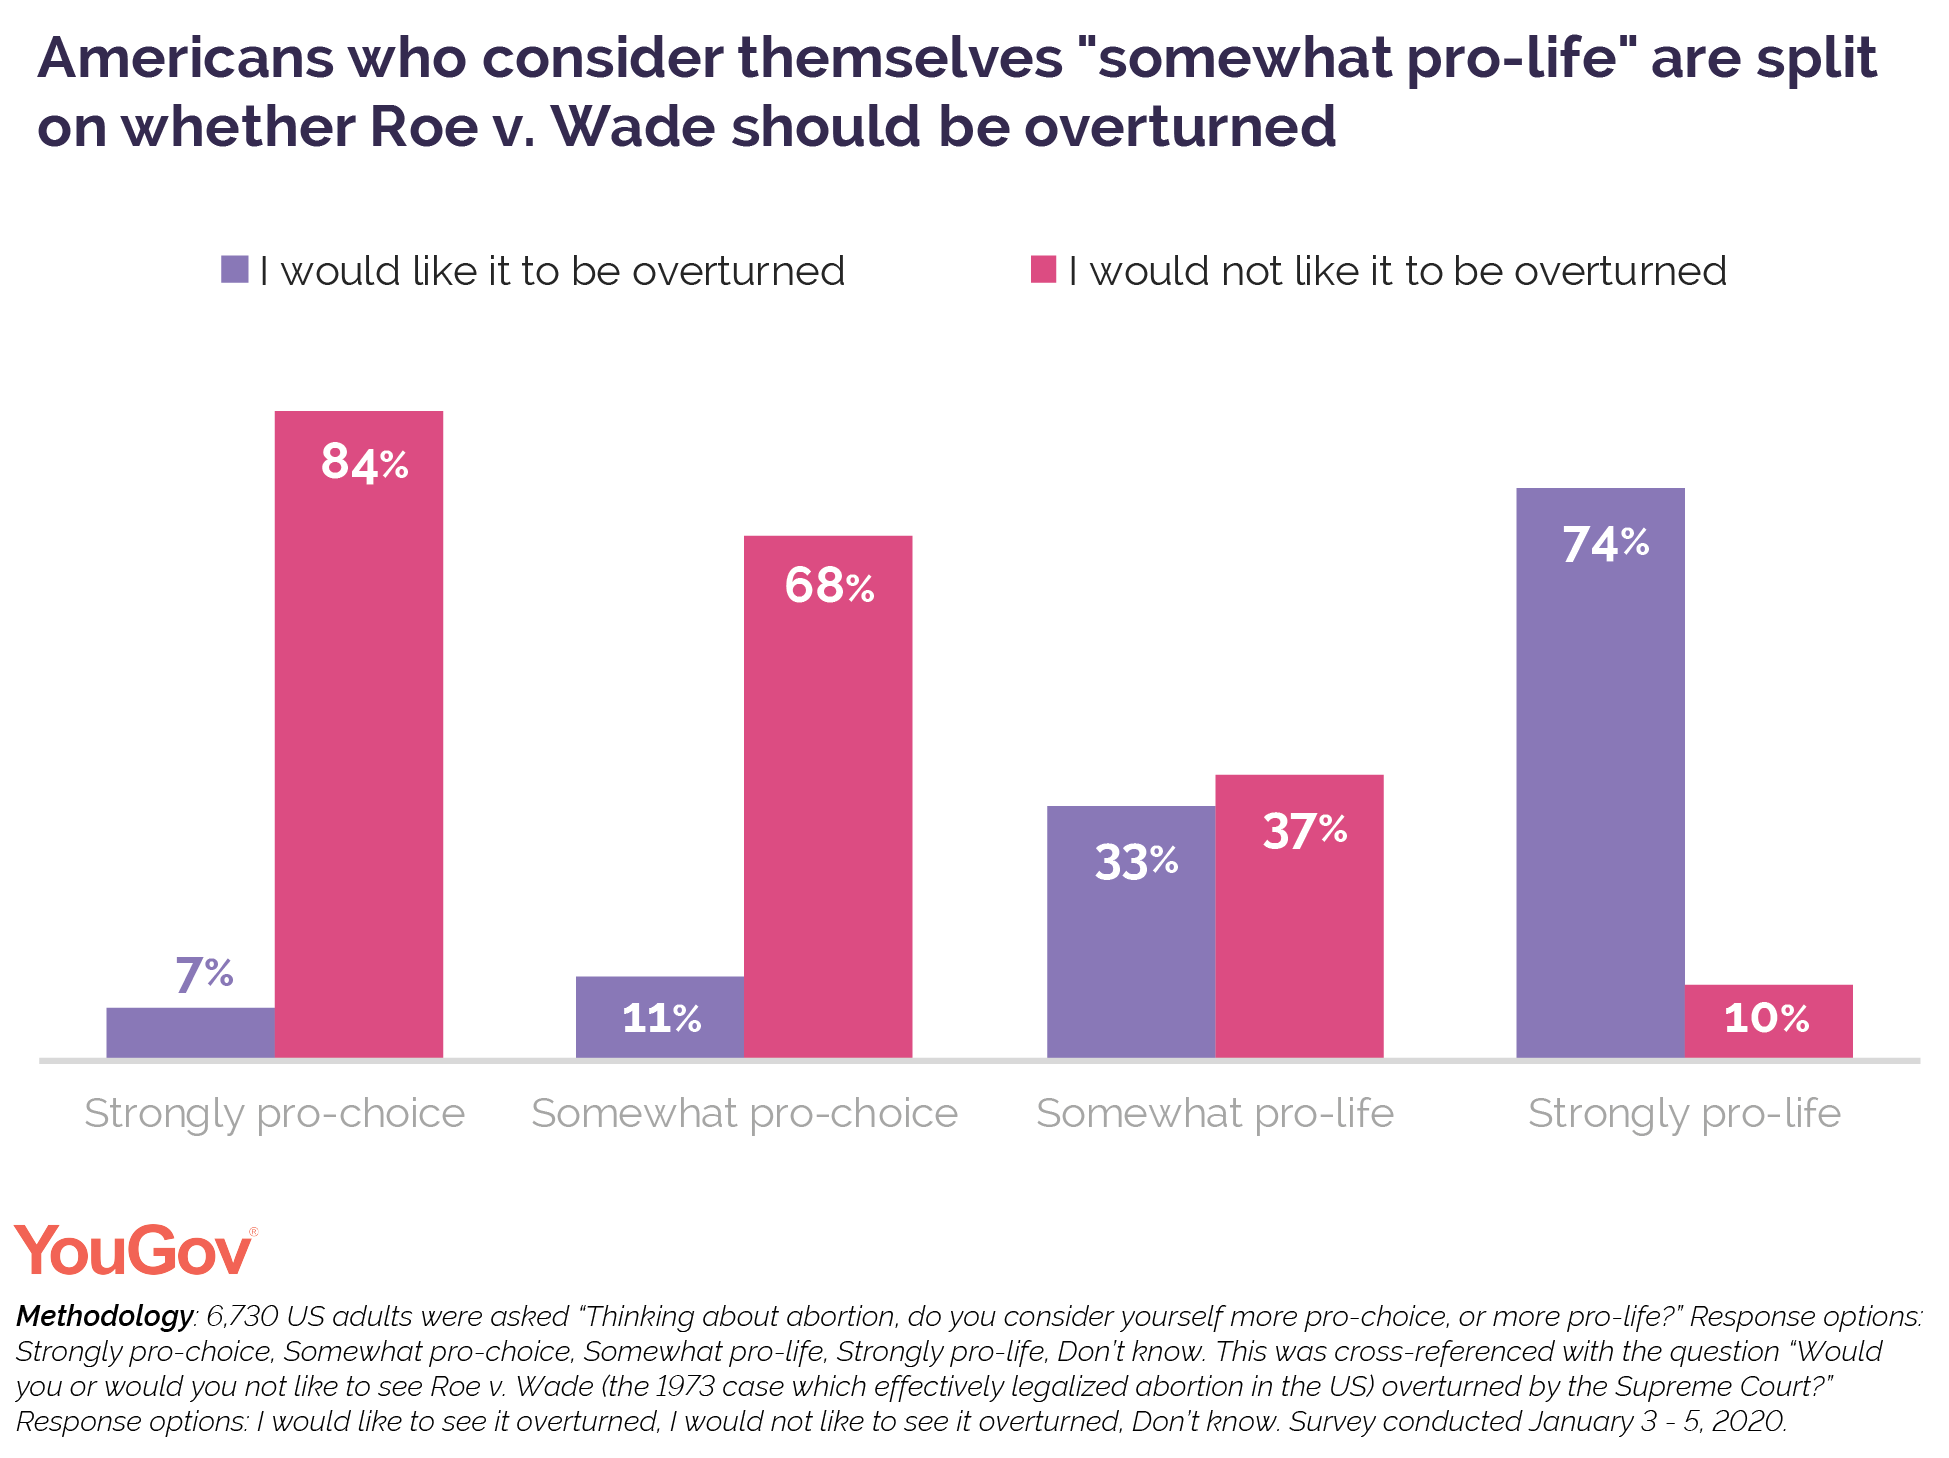 Americans who consider themselves somewhat pro-life are split on whether Roe v Wade should be overturned